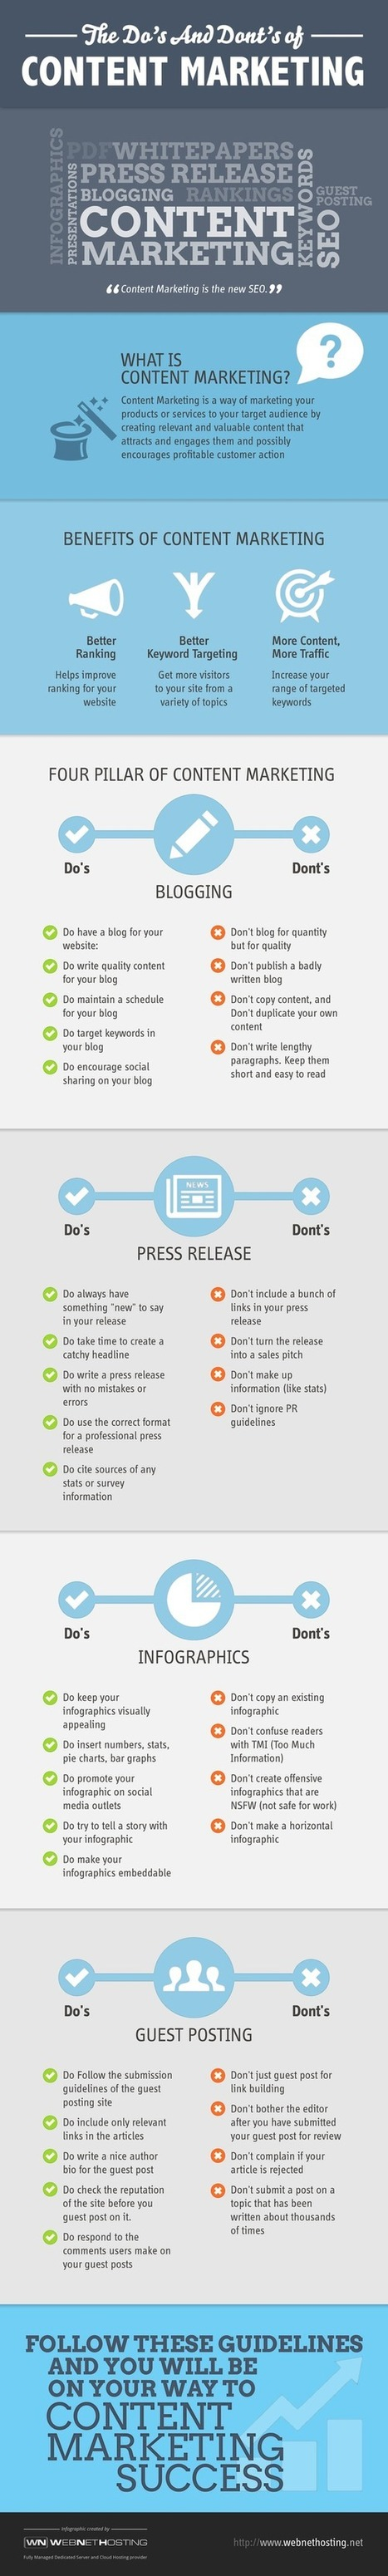 The Do's and Dont's of Content Marketing - Infographic | Business for small businesses | Scoop.it